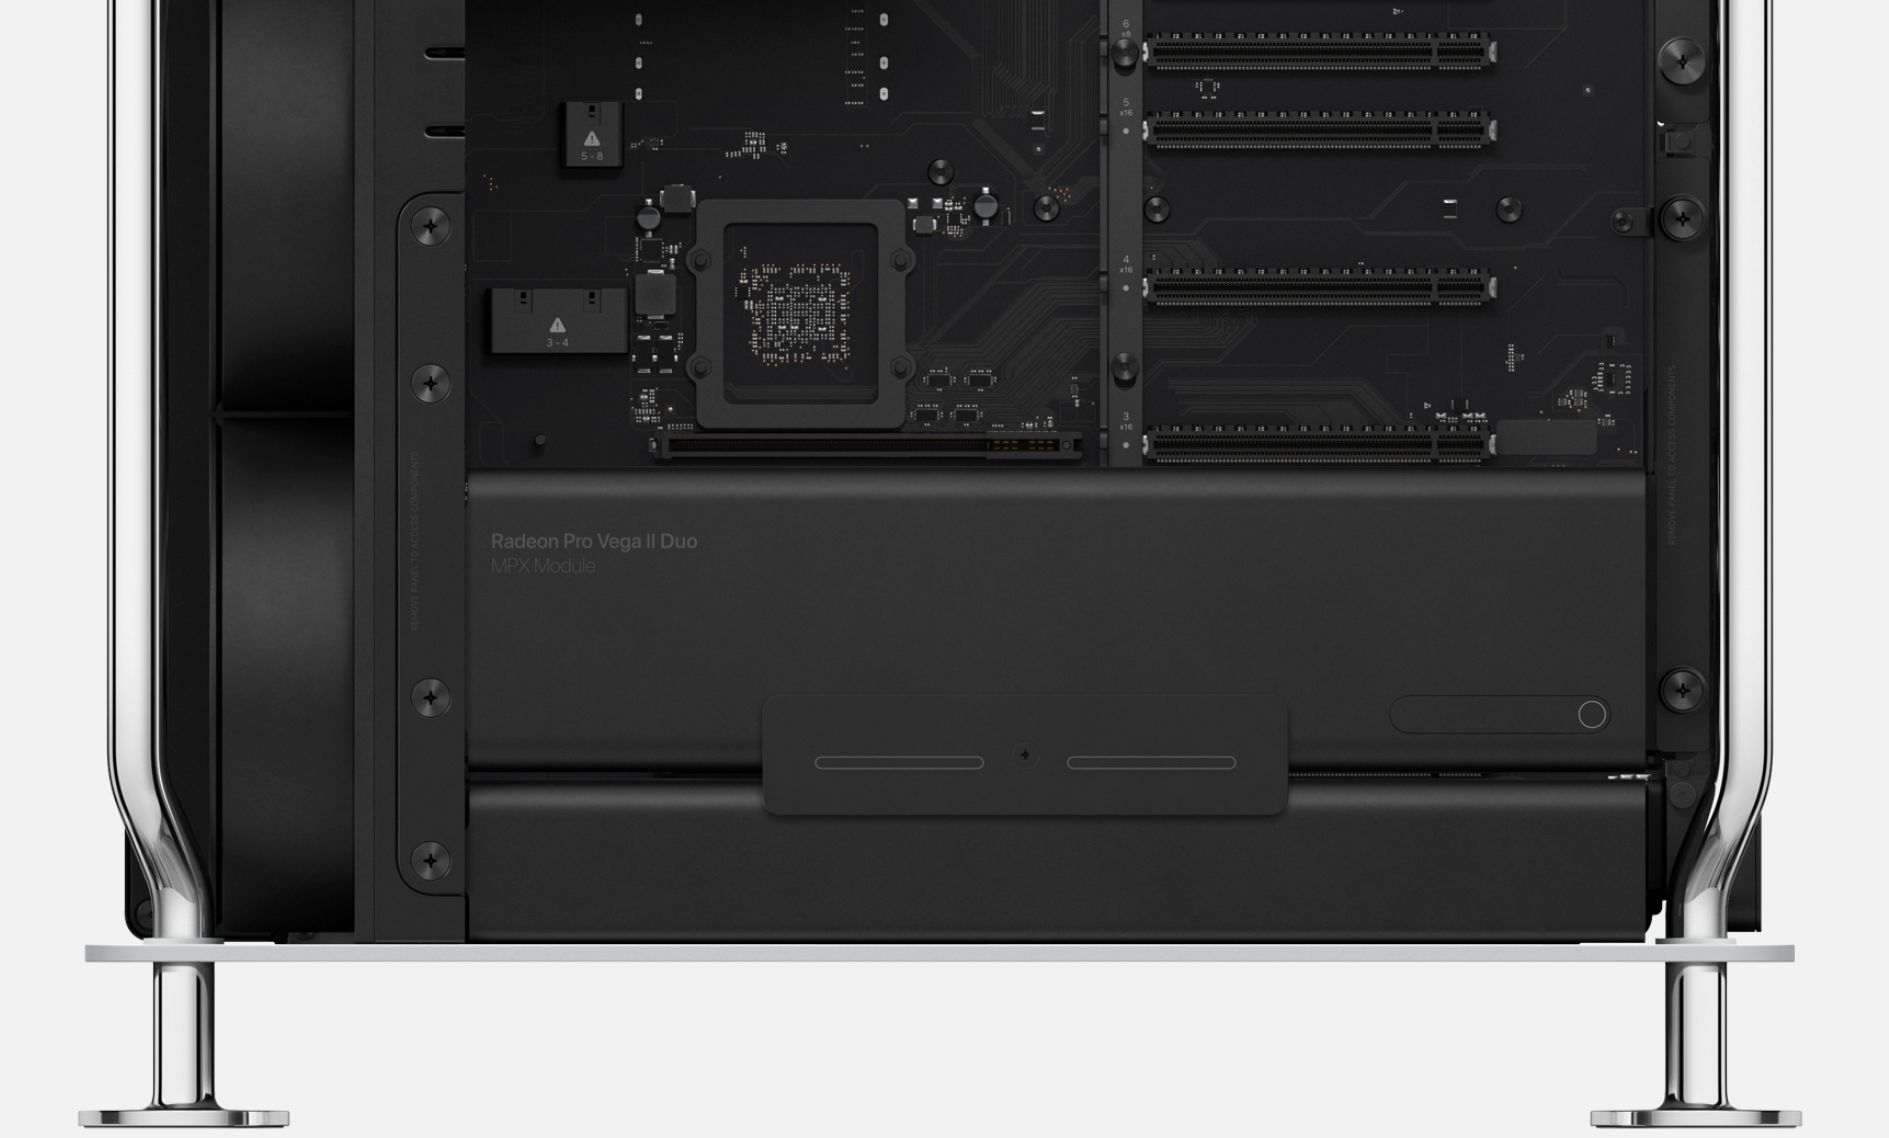 Unboxing the tech of the new Mac Pro 7